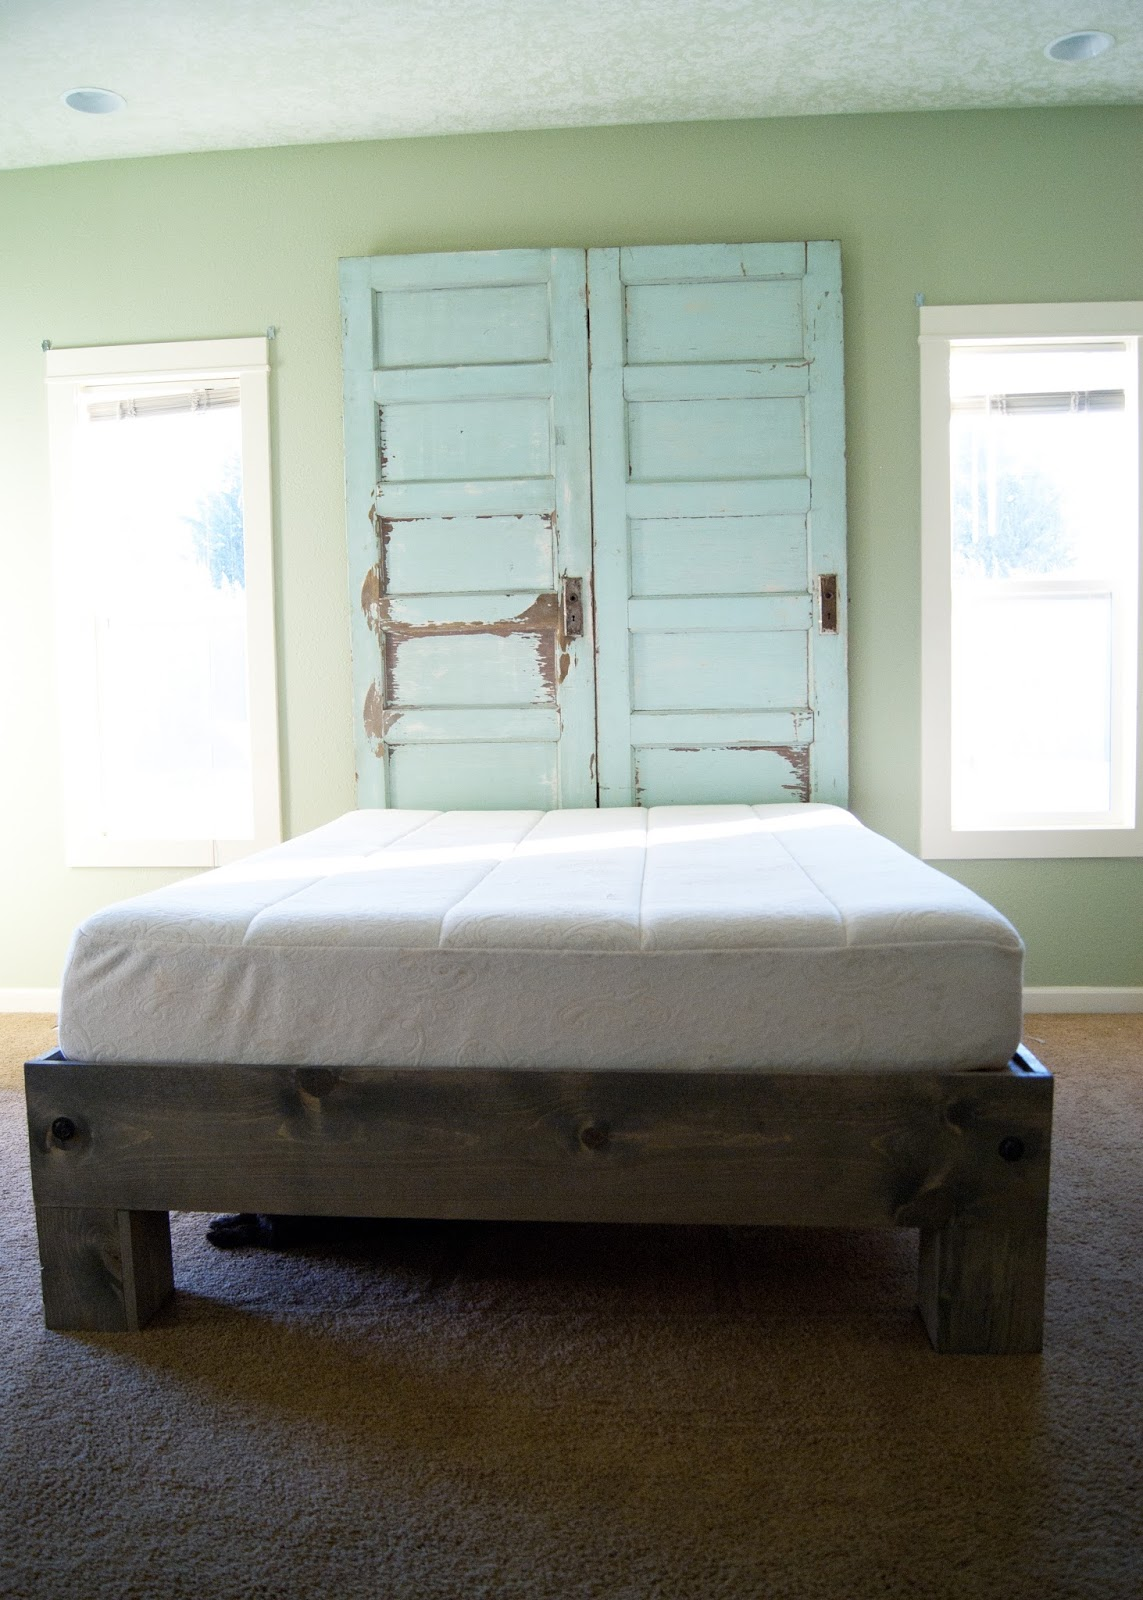 Platform bed and old doors for a headboard